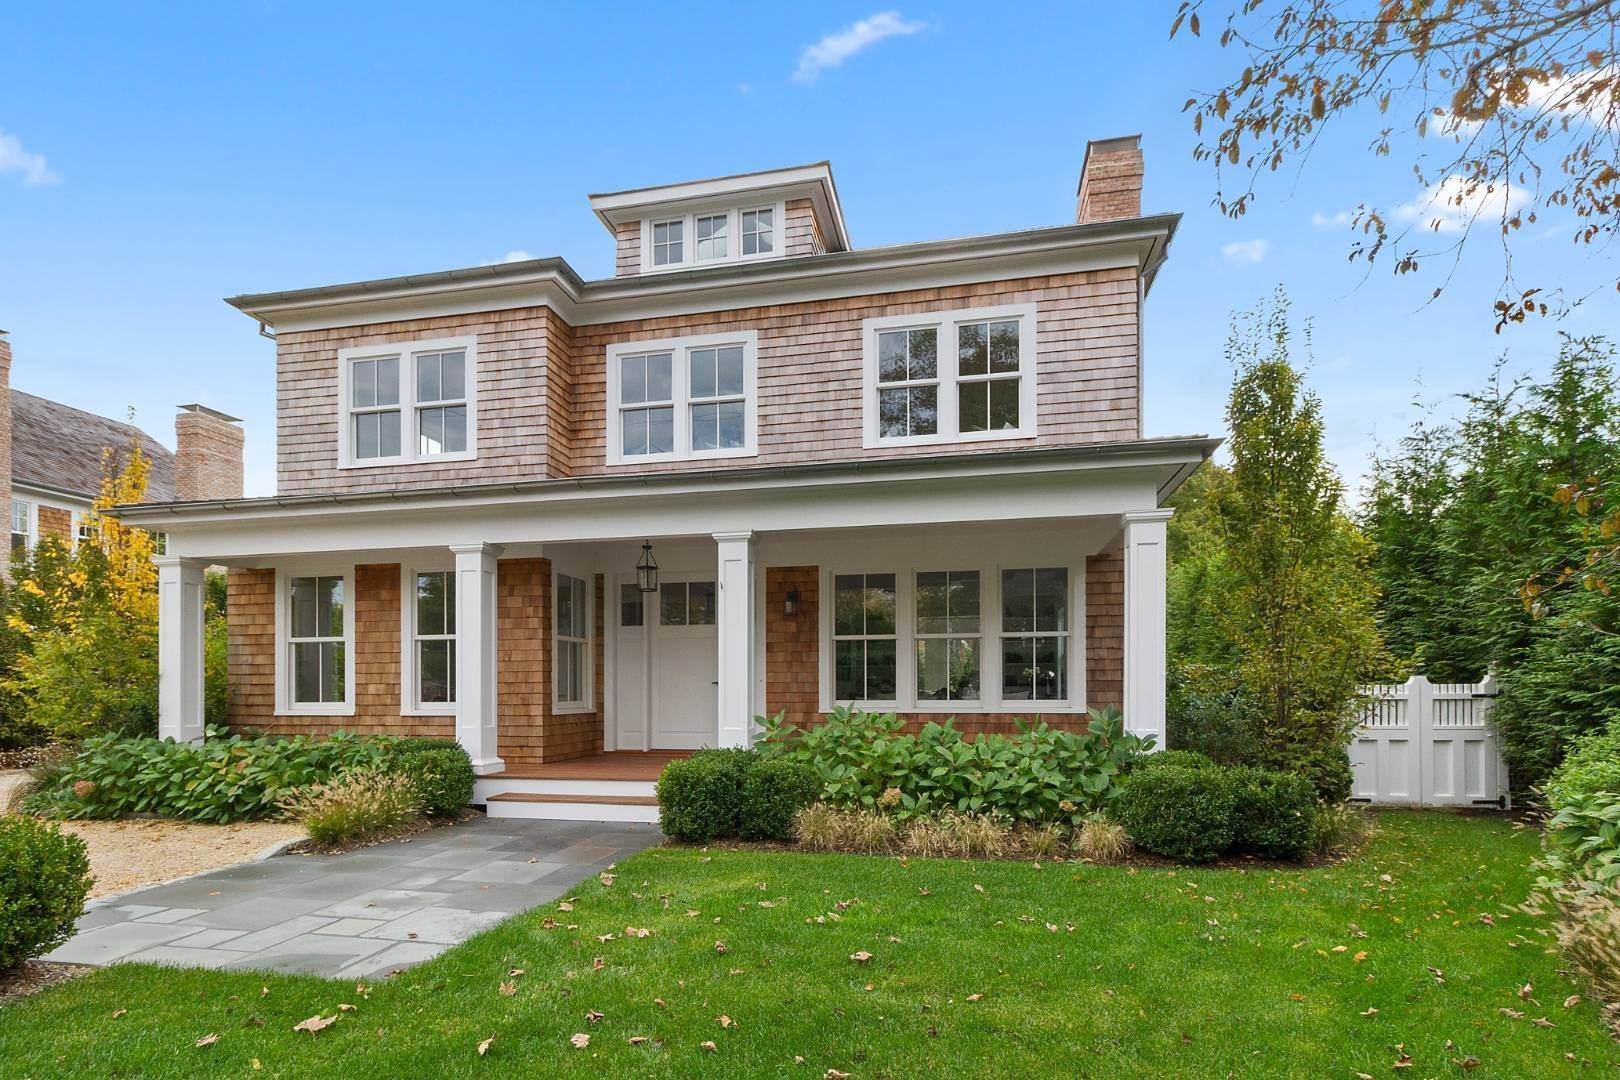 Single Family Home for Sale at Perfect Village Home With Pool & Pool House 42 Old Town Crossing, Southampton, NY 11968